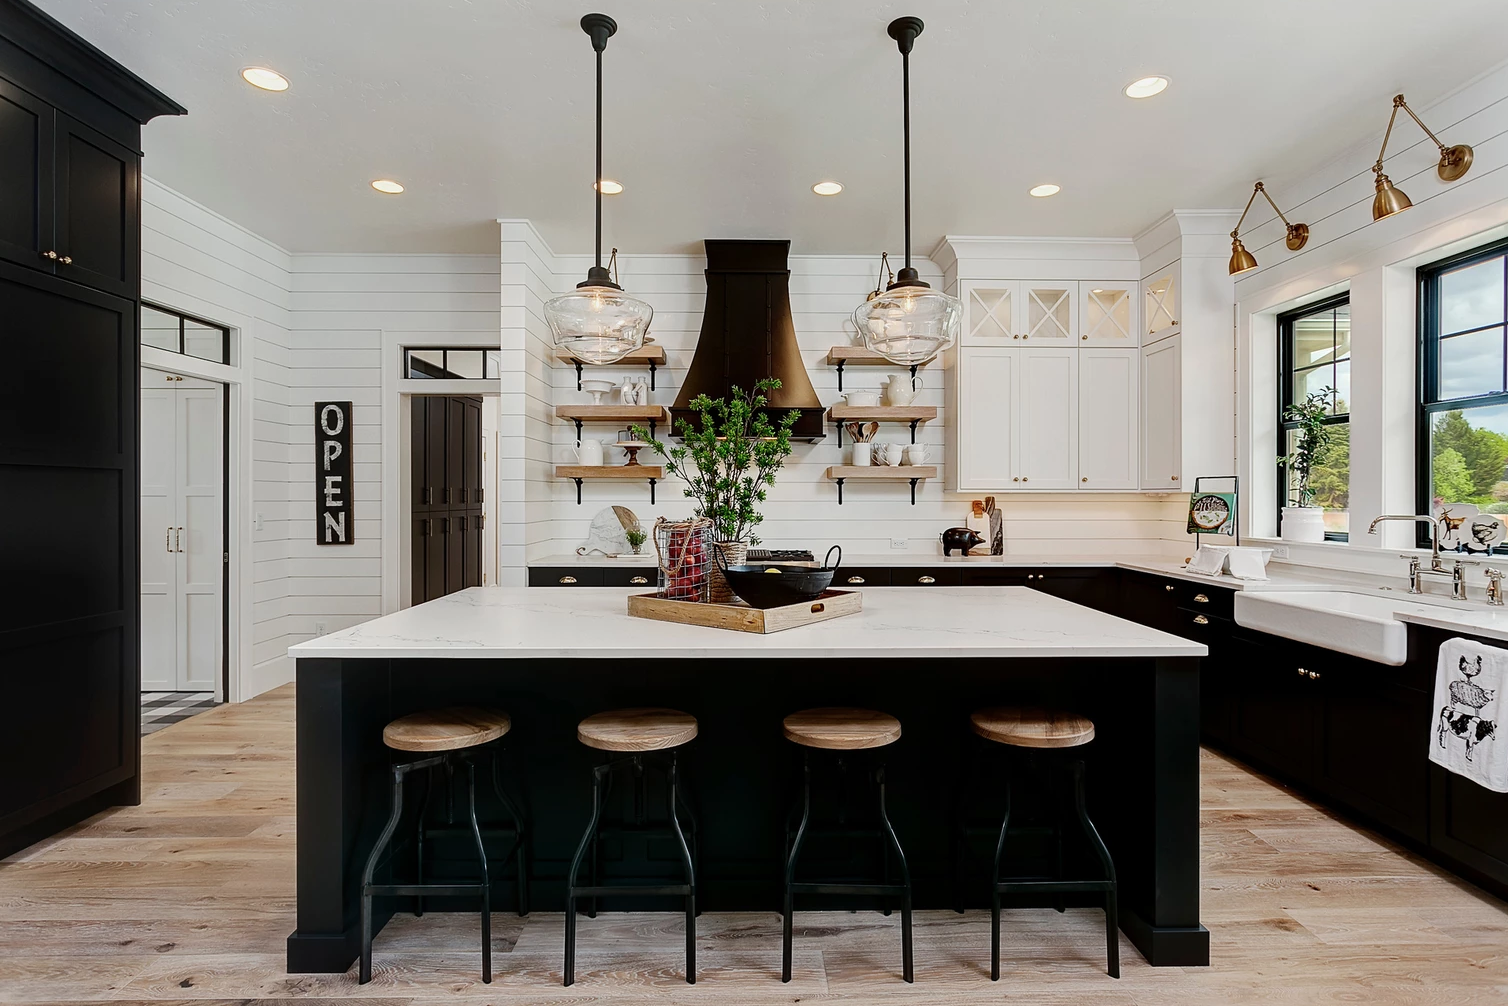 Best The 15 Most Beautiful Modern Farmhouse Kitchens On 640 x 480